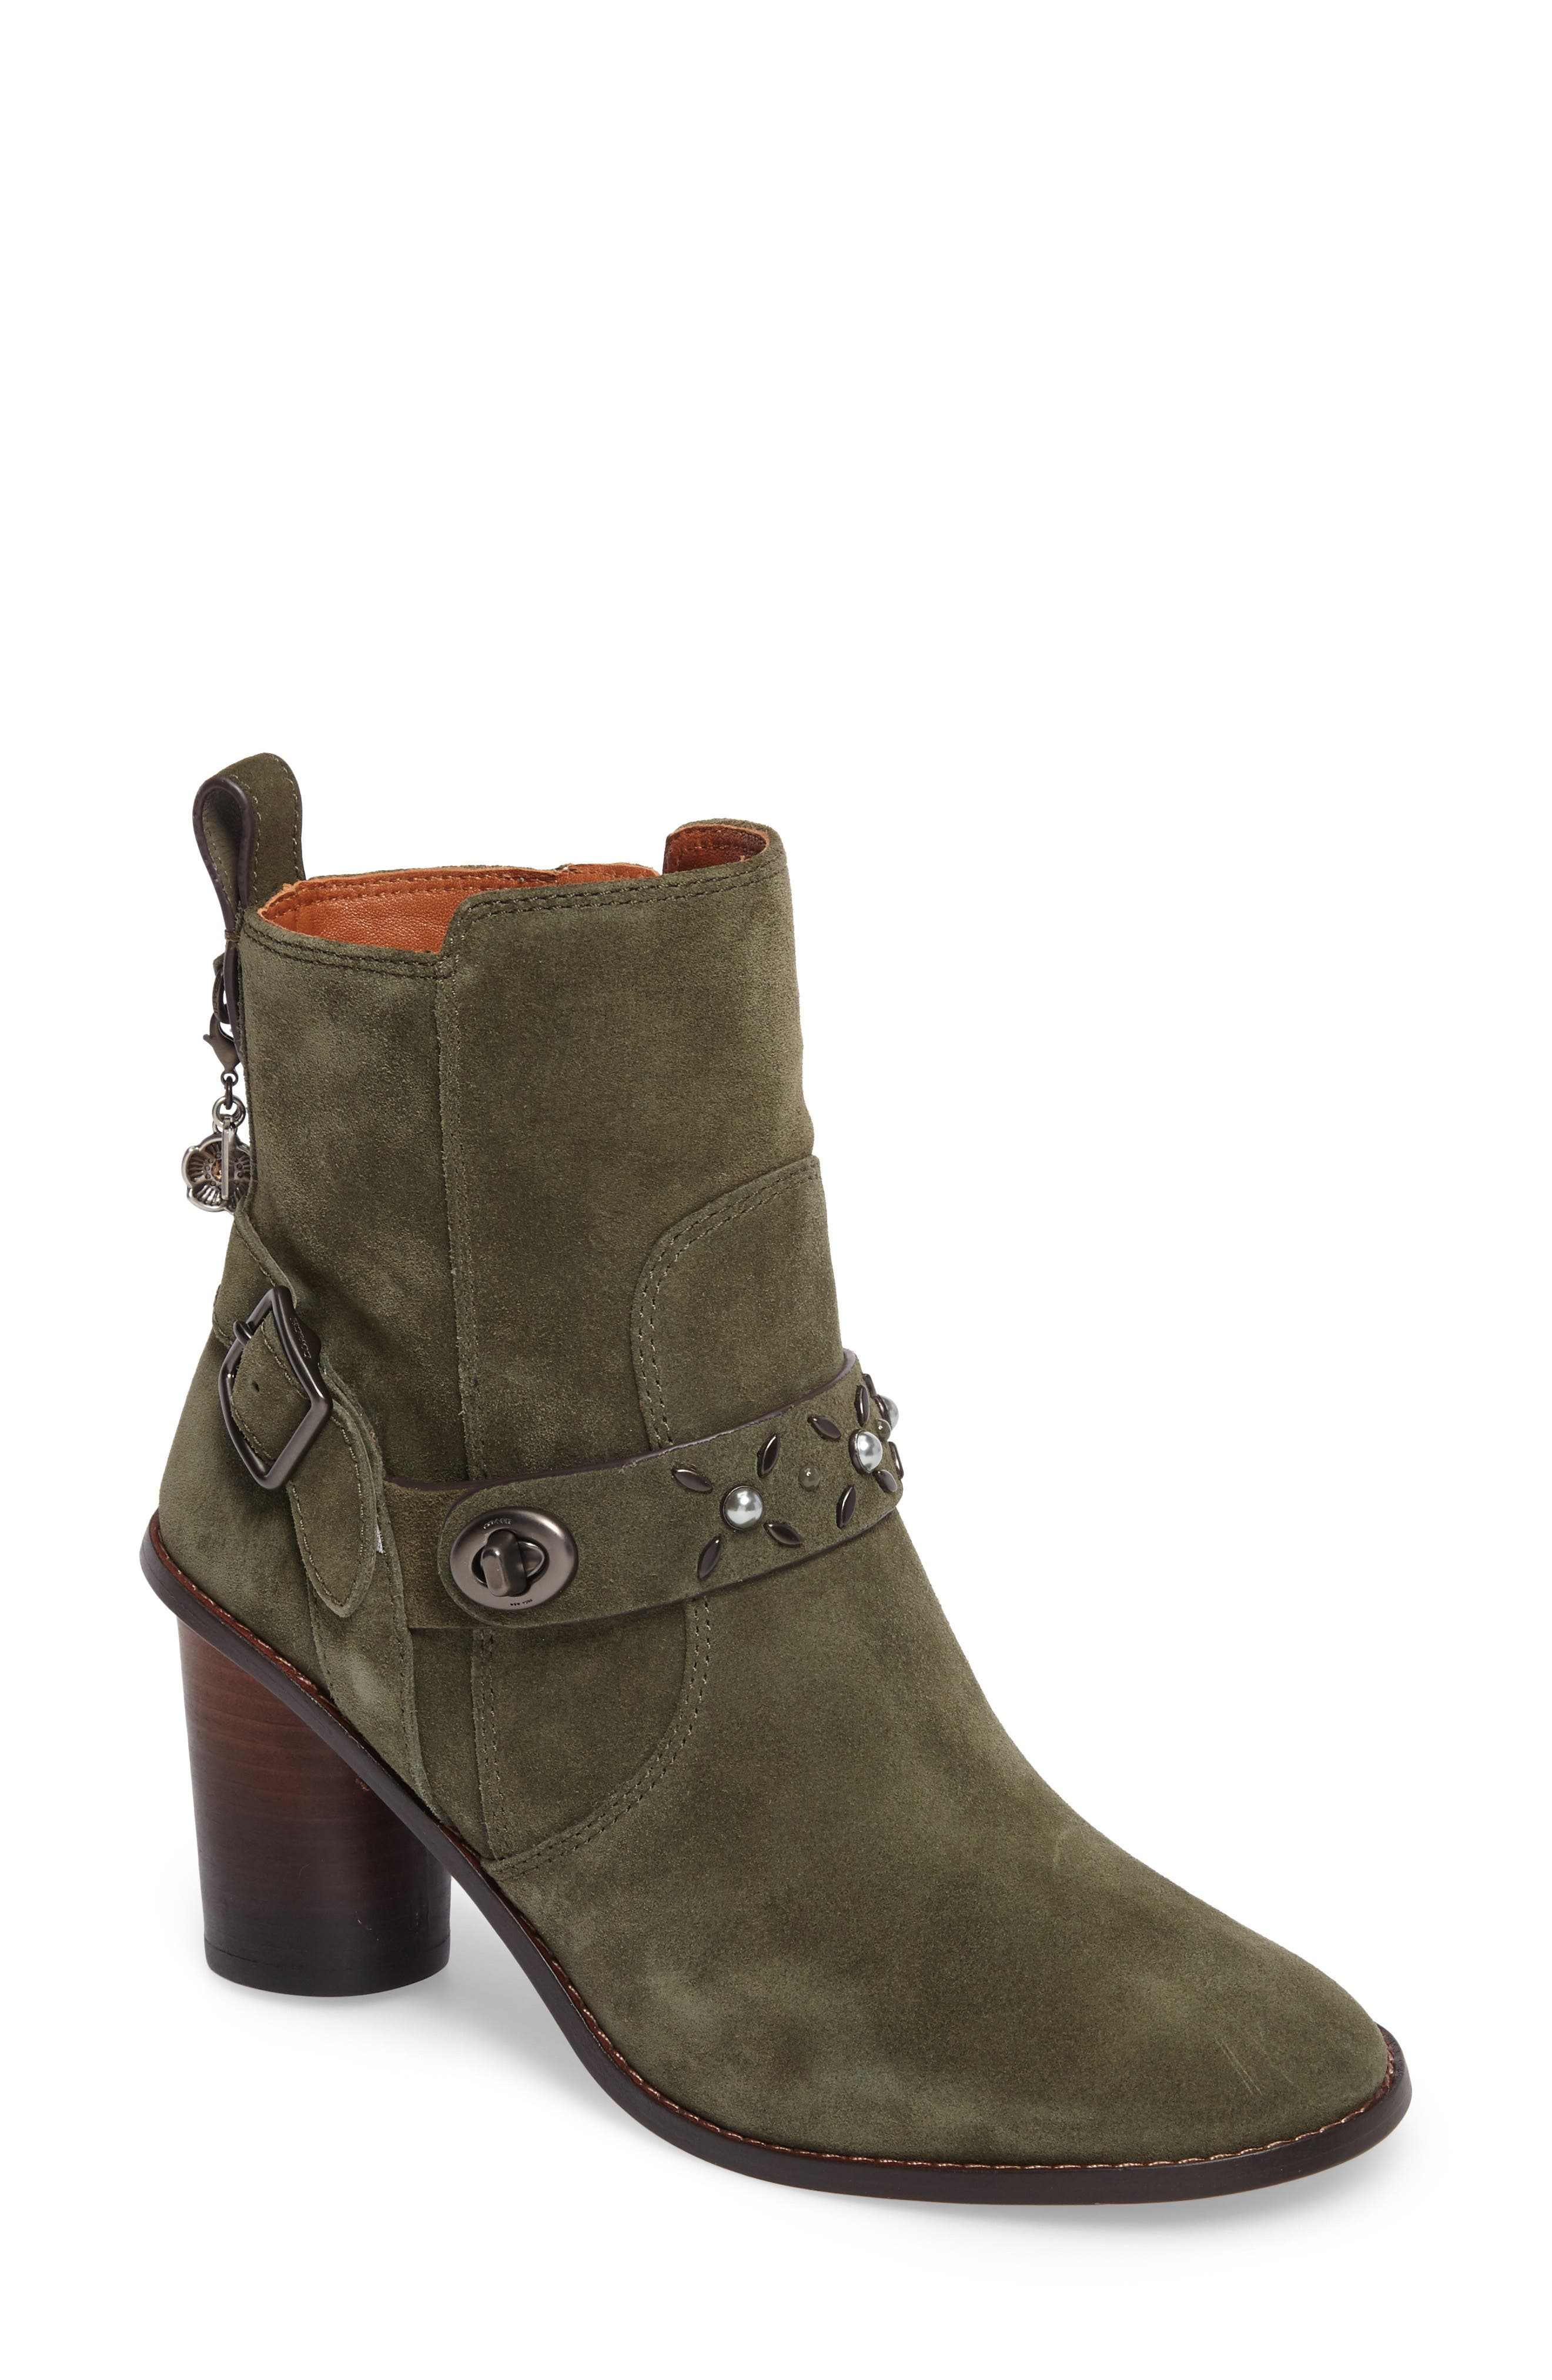 Alternate Image 1 Selected - COACH Studded Western Boot (Women)